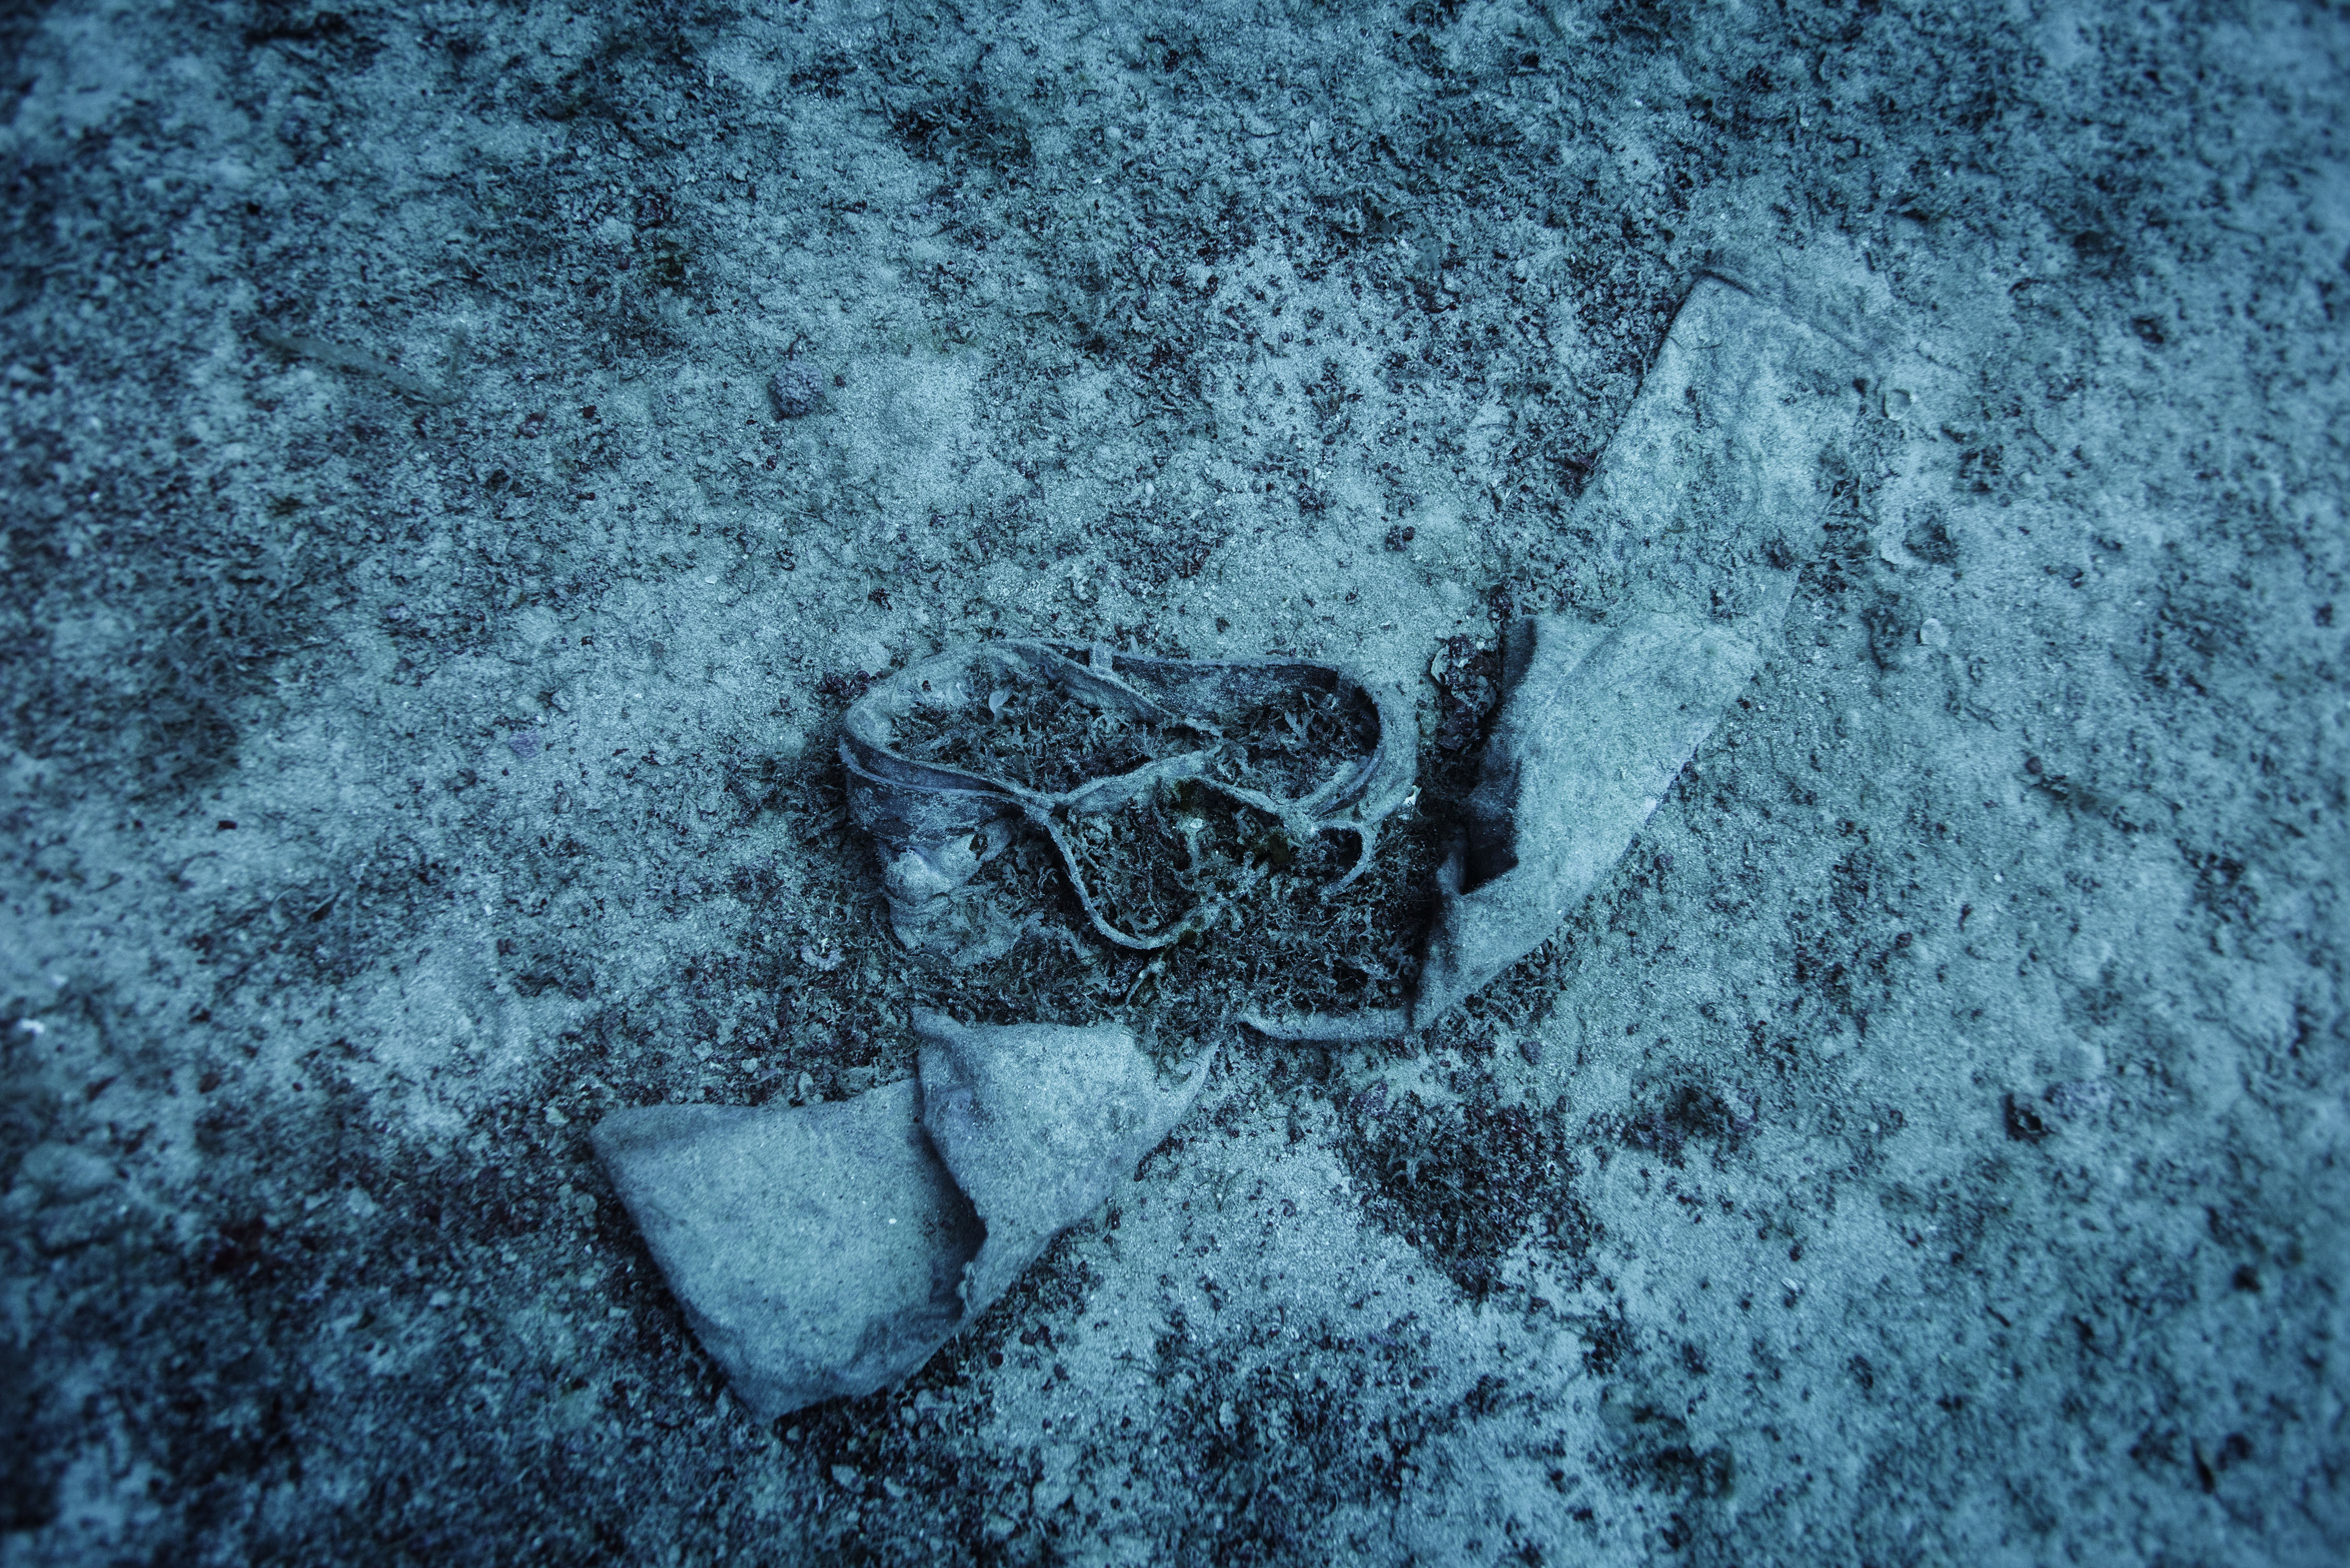 A pair of trousers lie on the seabed near the shipwreck of the 66-foot-long fishing boat that sank off the coast of the Italian island of Lampedusa lies at a depth of 164 ft. on the seabed, on Sept. 22, 2014. The tragedy that happened a year ago on Oct. 3, 2013 killed 366 migrants from North Africa.